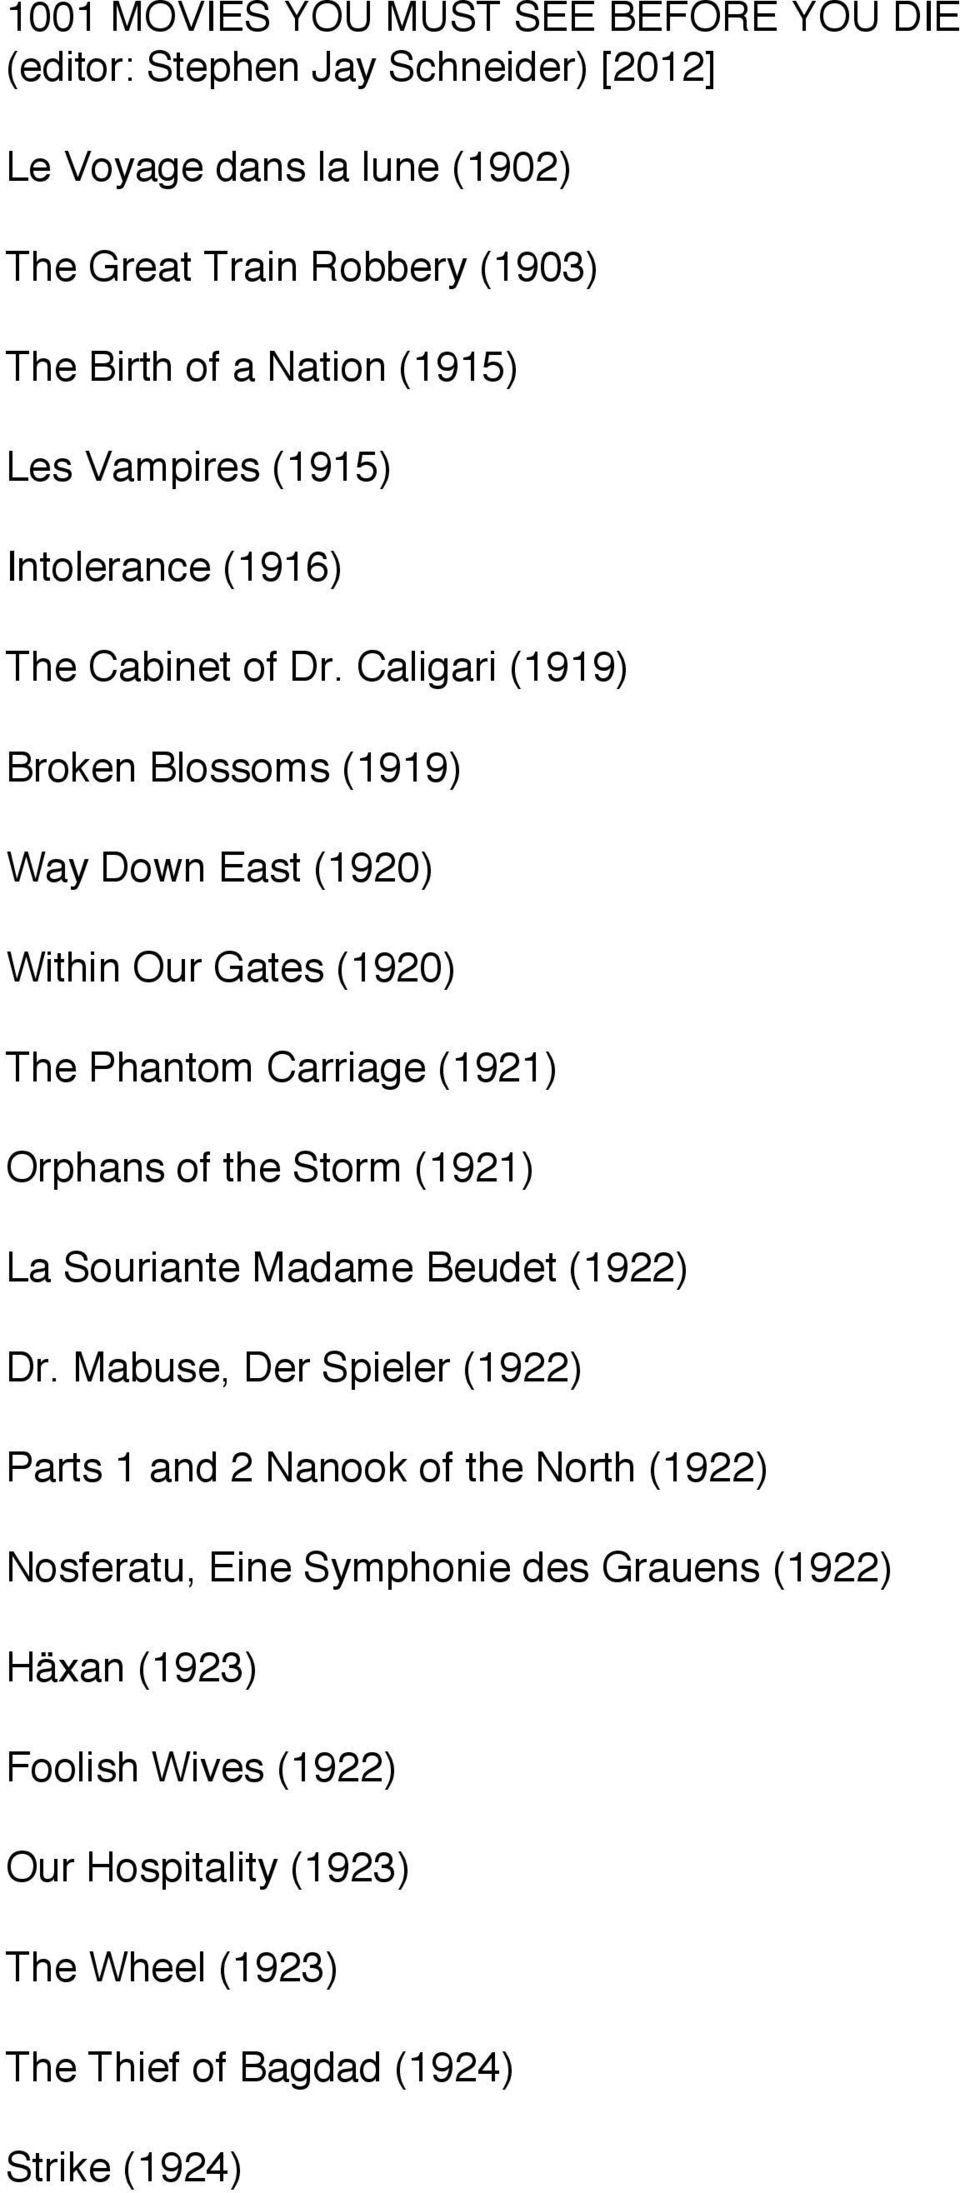 Caligari (1919) Broken Blossoms (1919) Way Down East (1920) Within Our Gates (1920) The Phantom Carriage (1921) Orphans of the Storm (1921) La Souriante